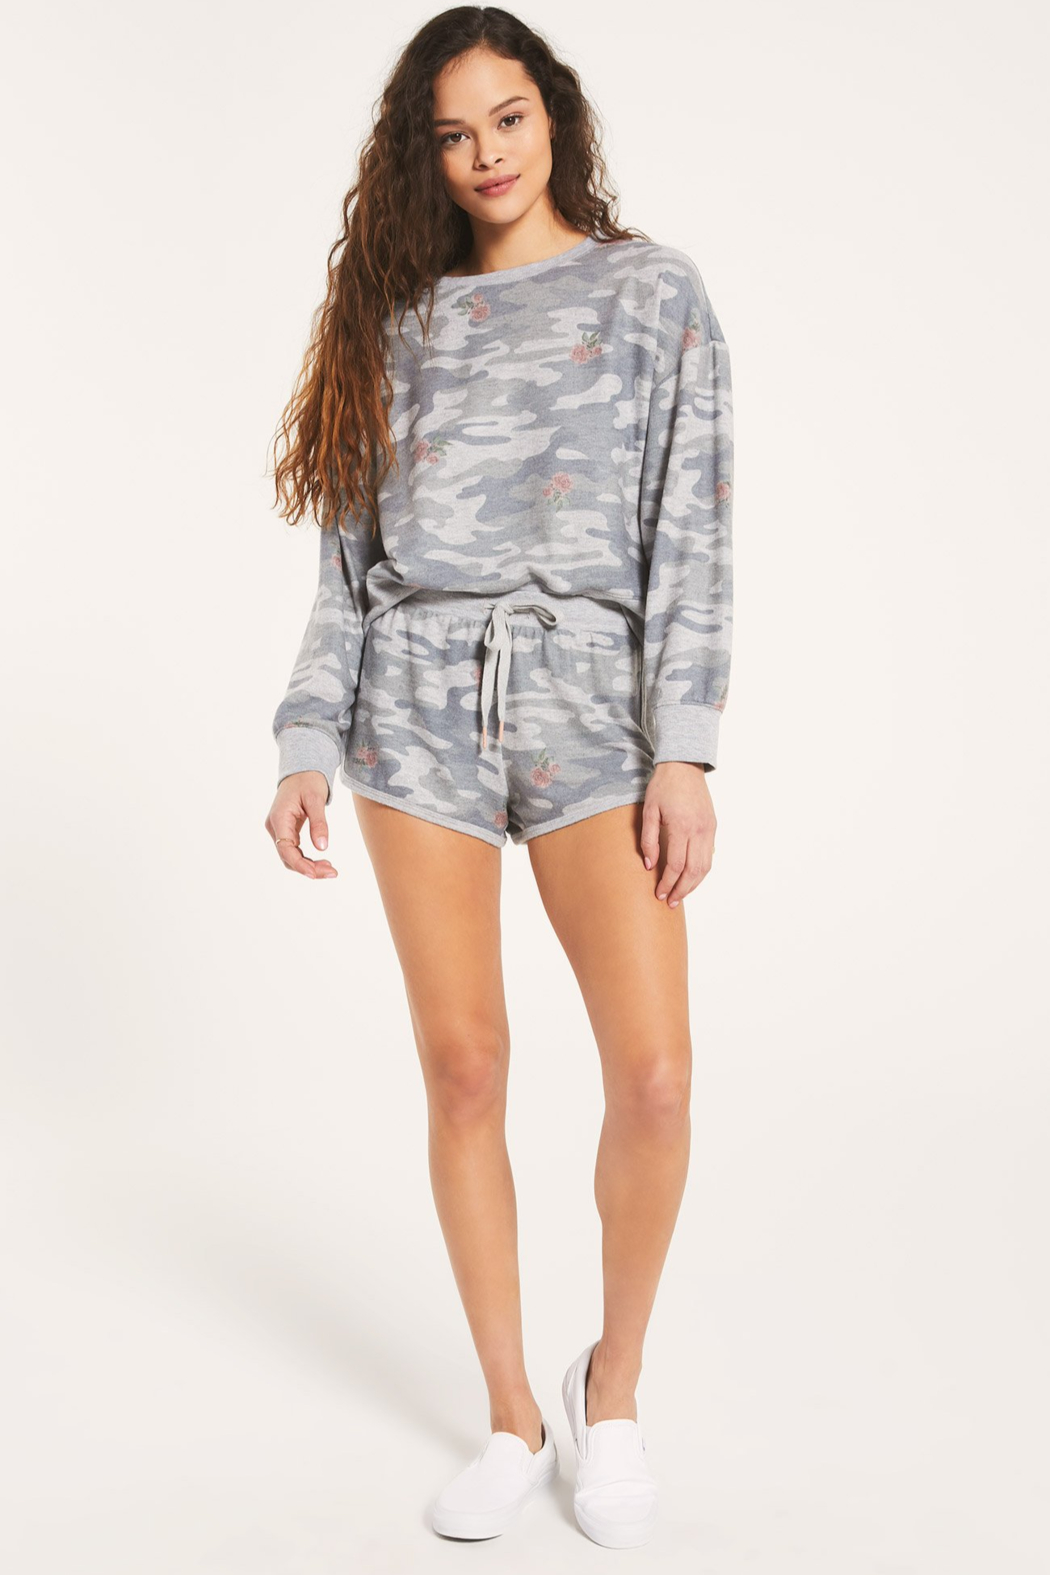 z supply Elle Rose Camo Long Sleeve - Main Image